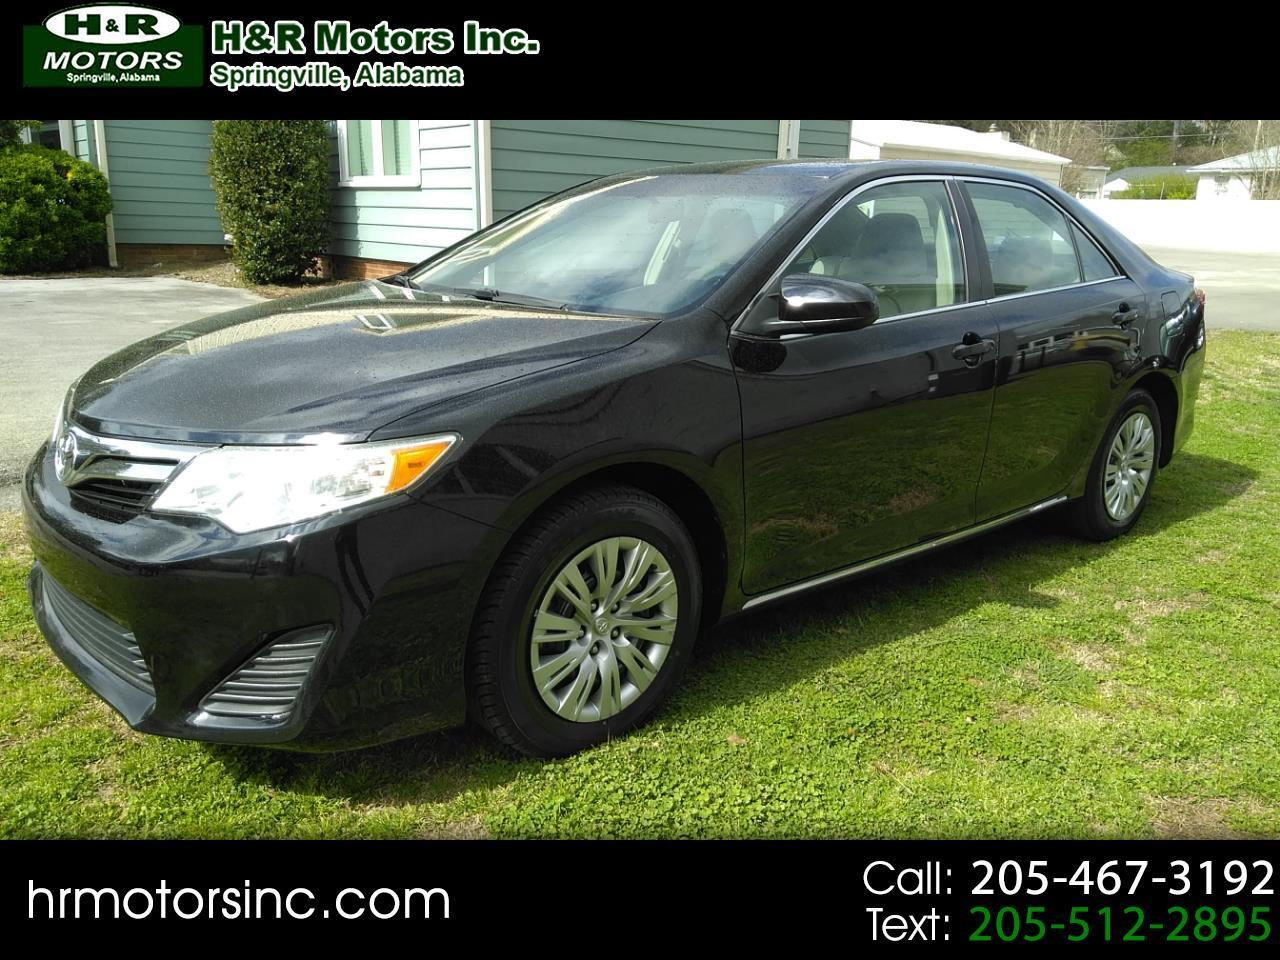 2014 Toyota Camry 4dr Sdn LE Auto V6